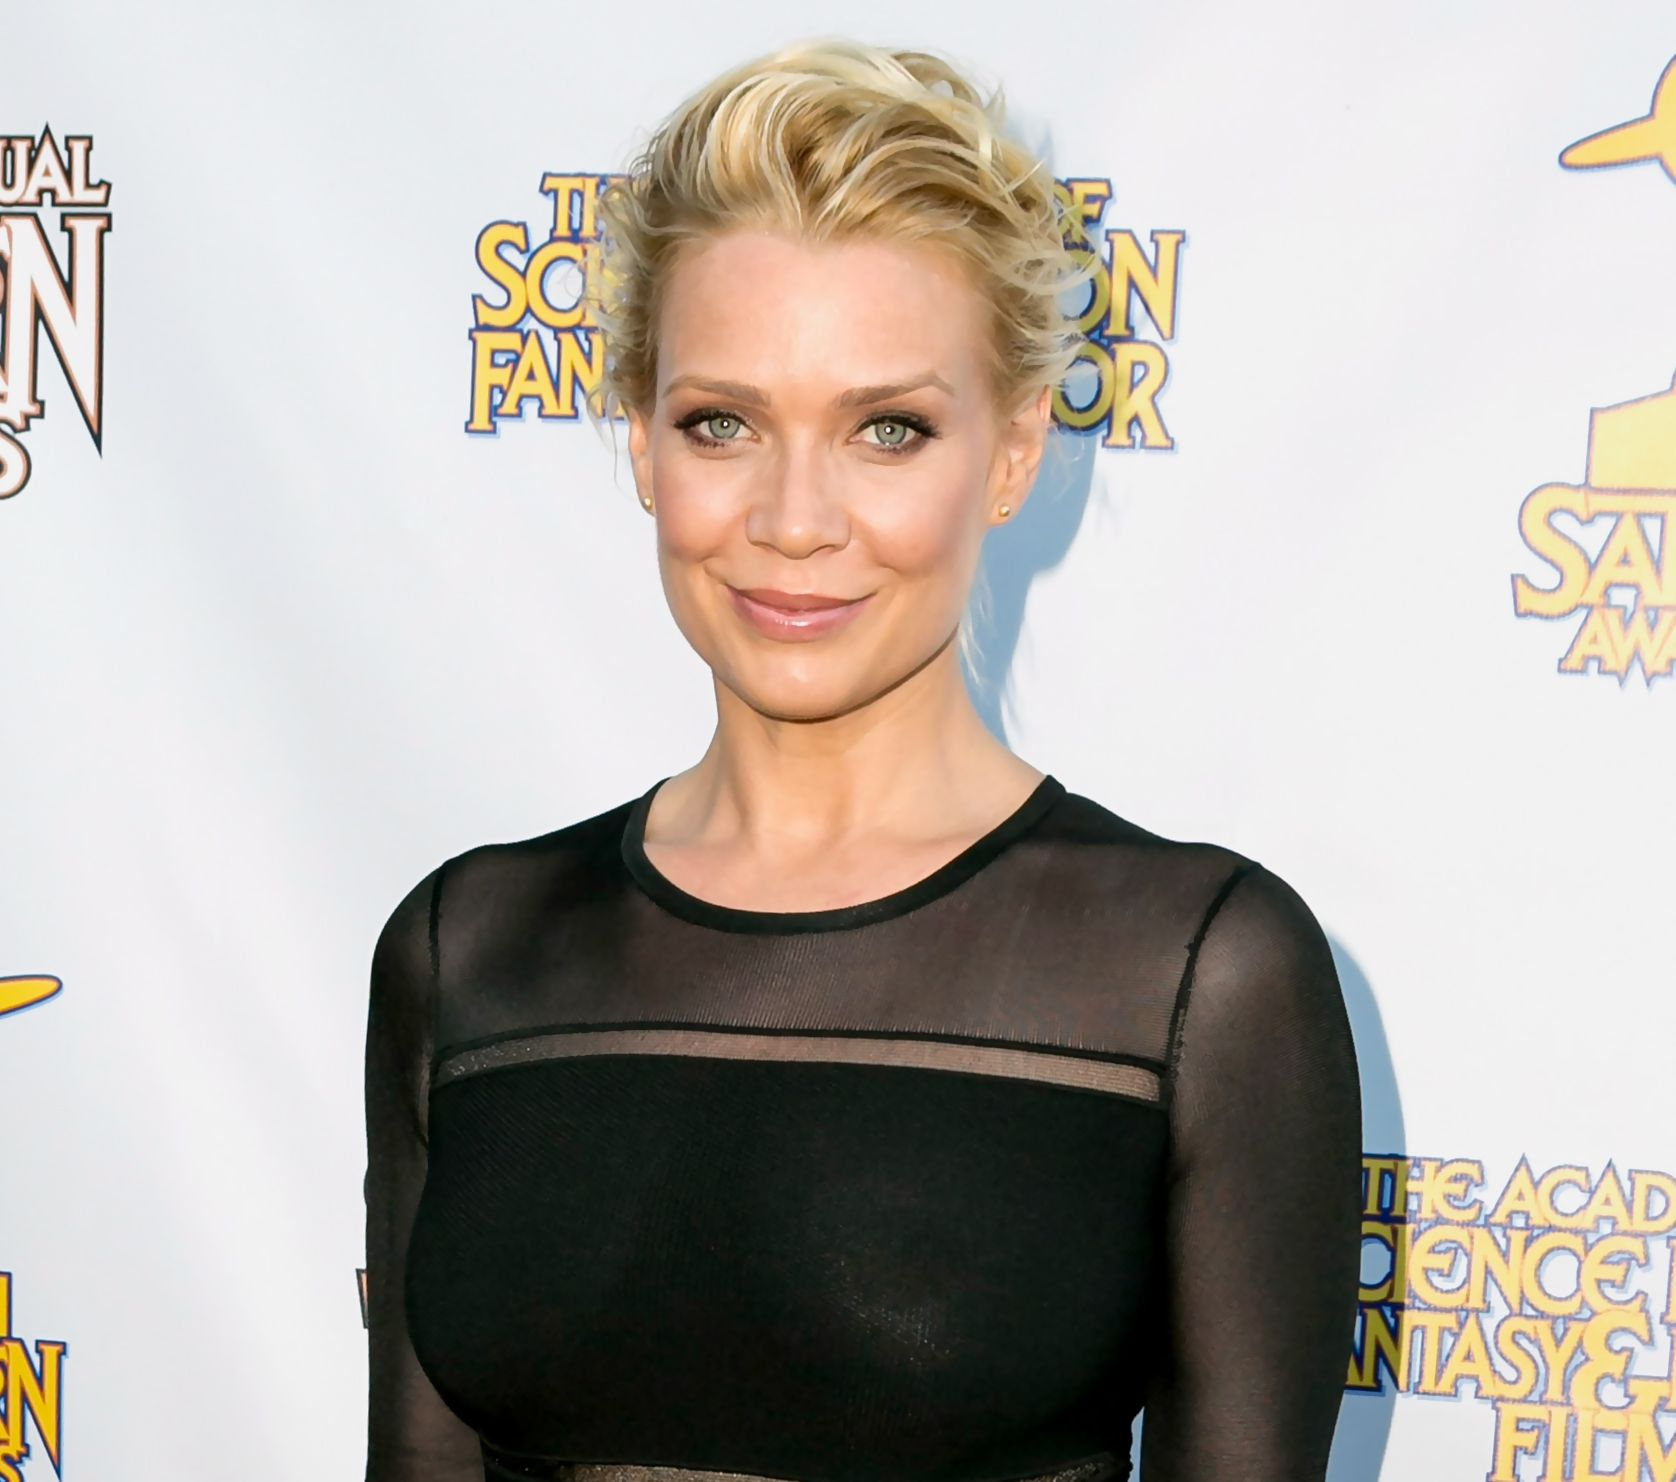 Sunny mabrey quotes quotations and aphorisms from openquotes quotes - Laurie Holden Google Search